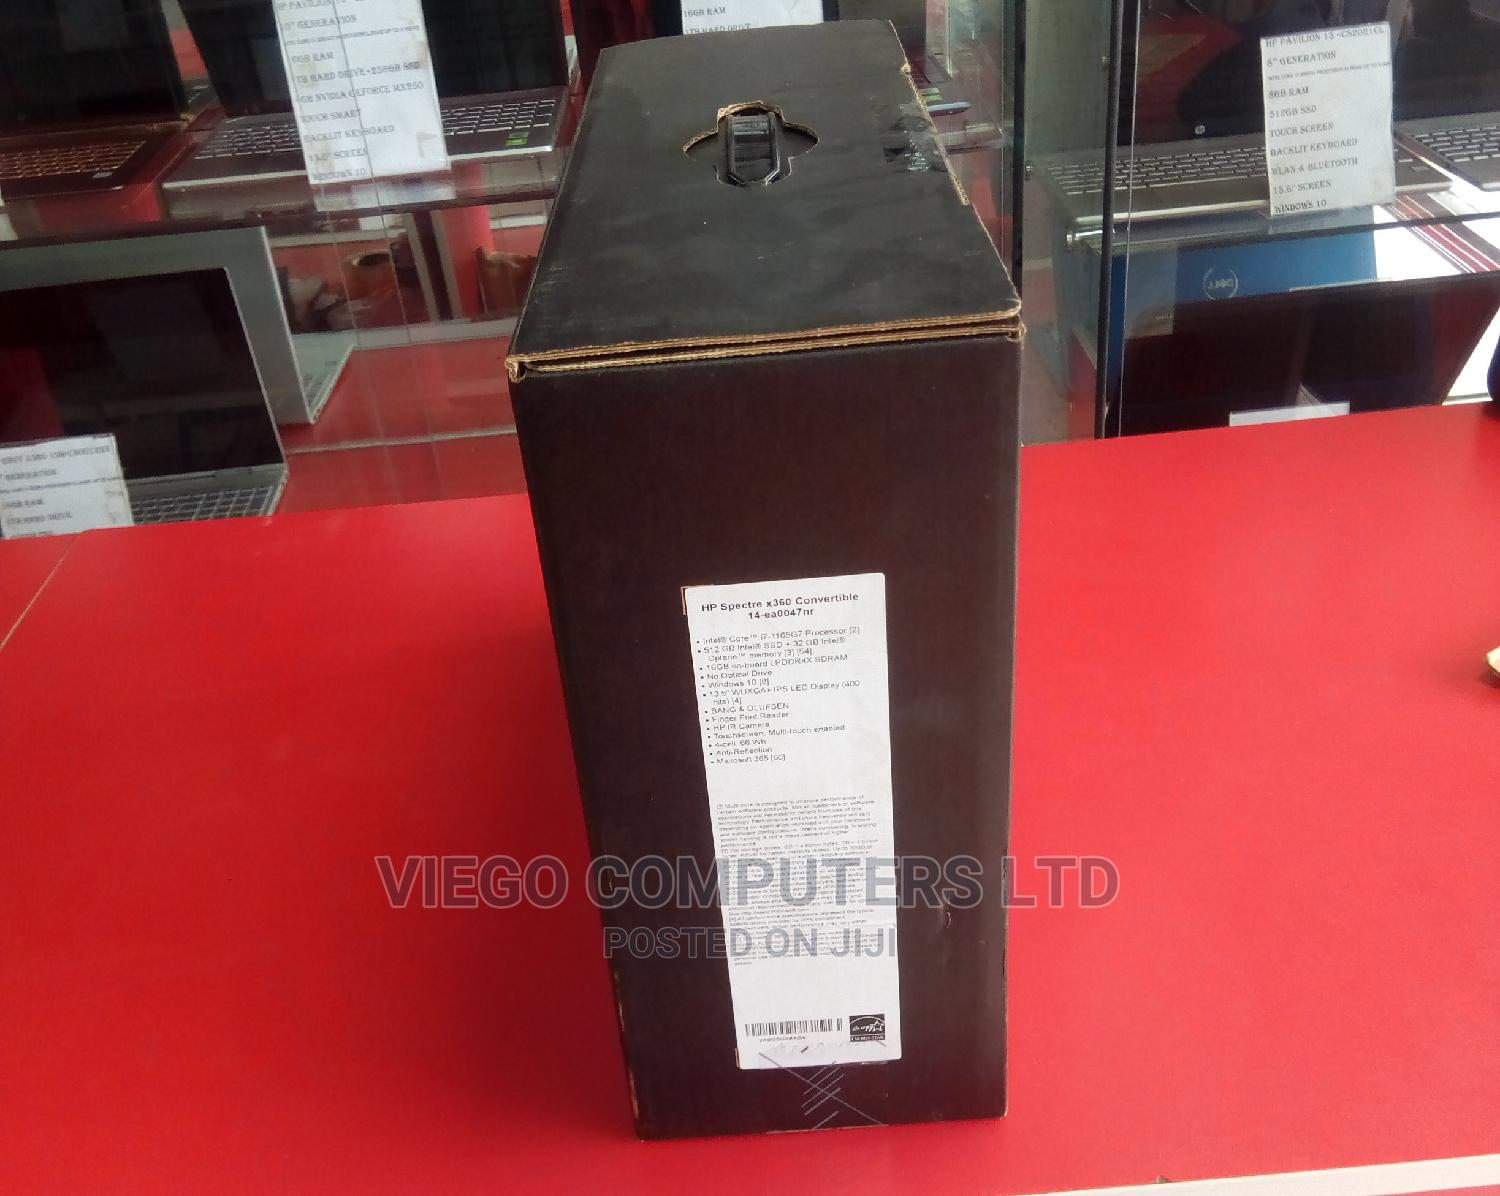 New Laptop HP Spectre X360 13 16GB Intel Core I7 SSD 512GB   Laptops & Computers for sale in Central Business Dis, Abuja (FCT) State, Nigeria